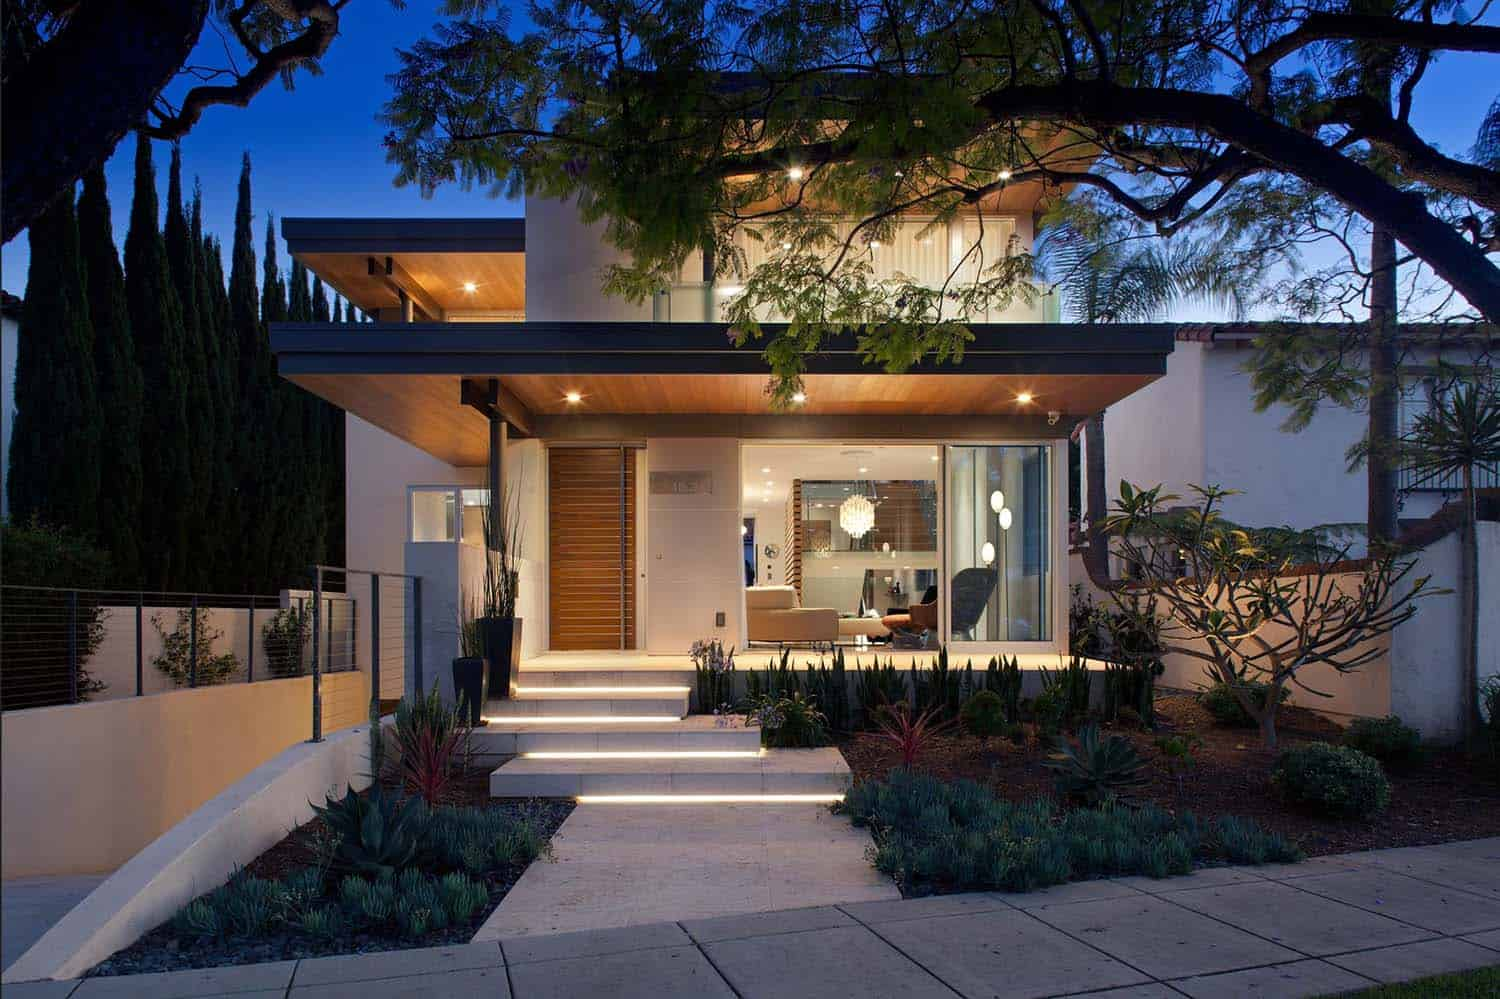 California Modern Architecture Southern California Home Features An Elegant Contemporary